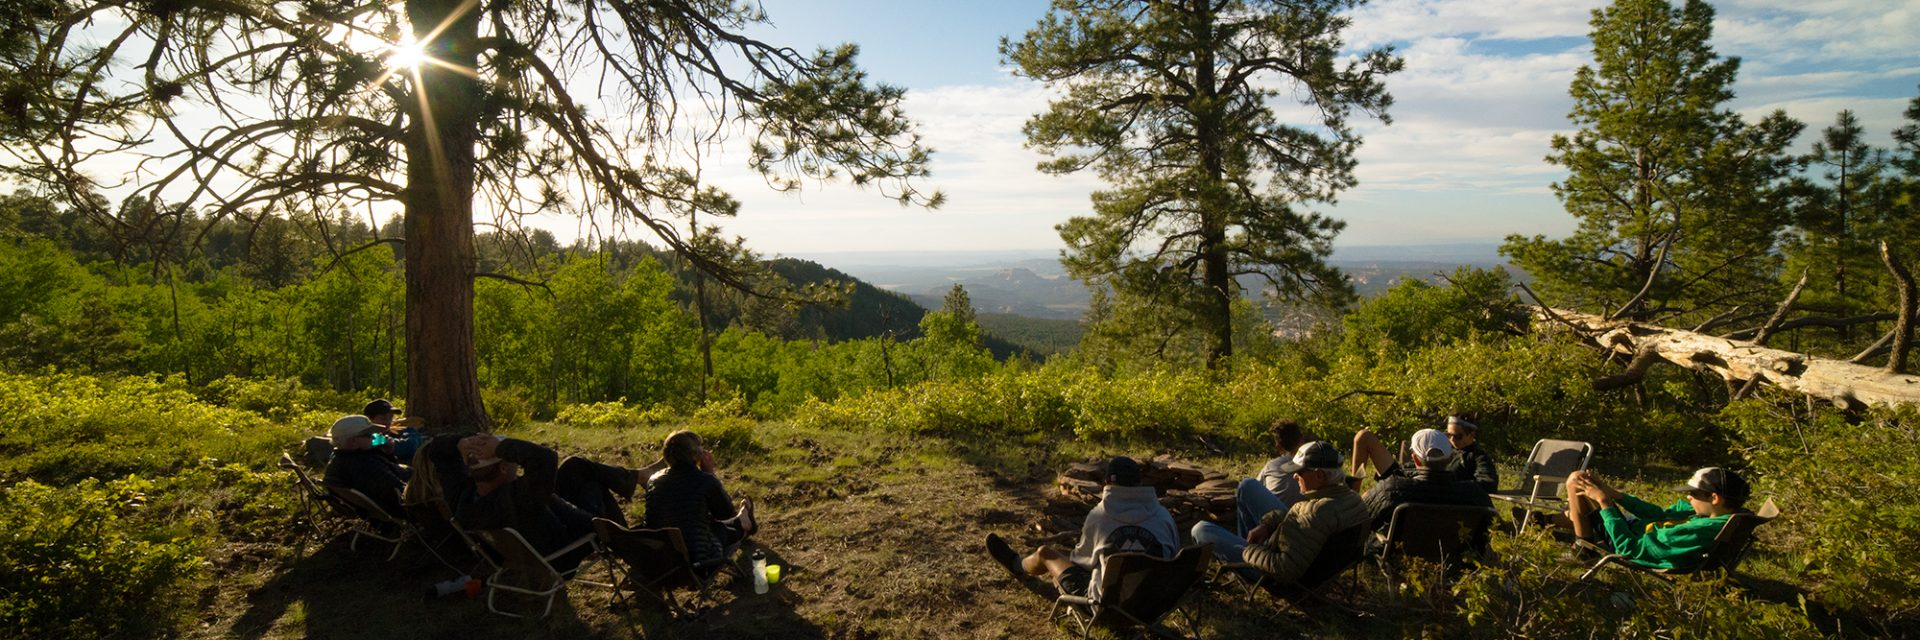 Bears Ears riders at Camp 2 watch the sunset